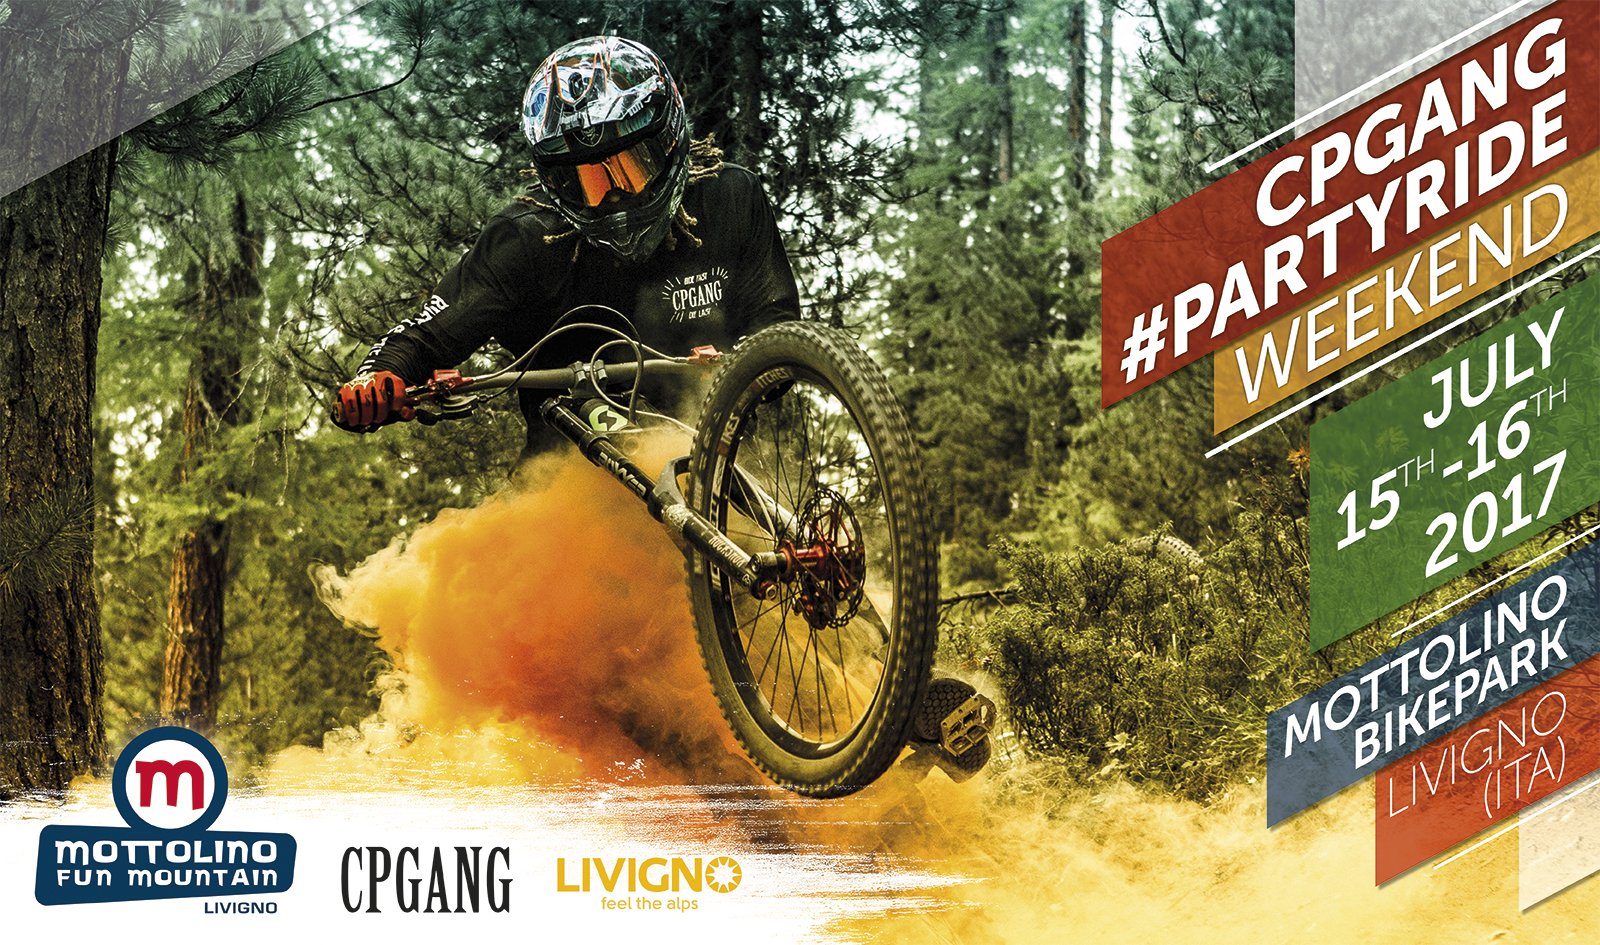 CPGANG PartyRIDE weekend a Livigno